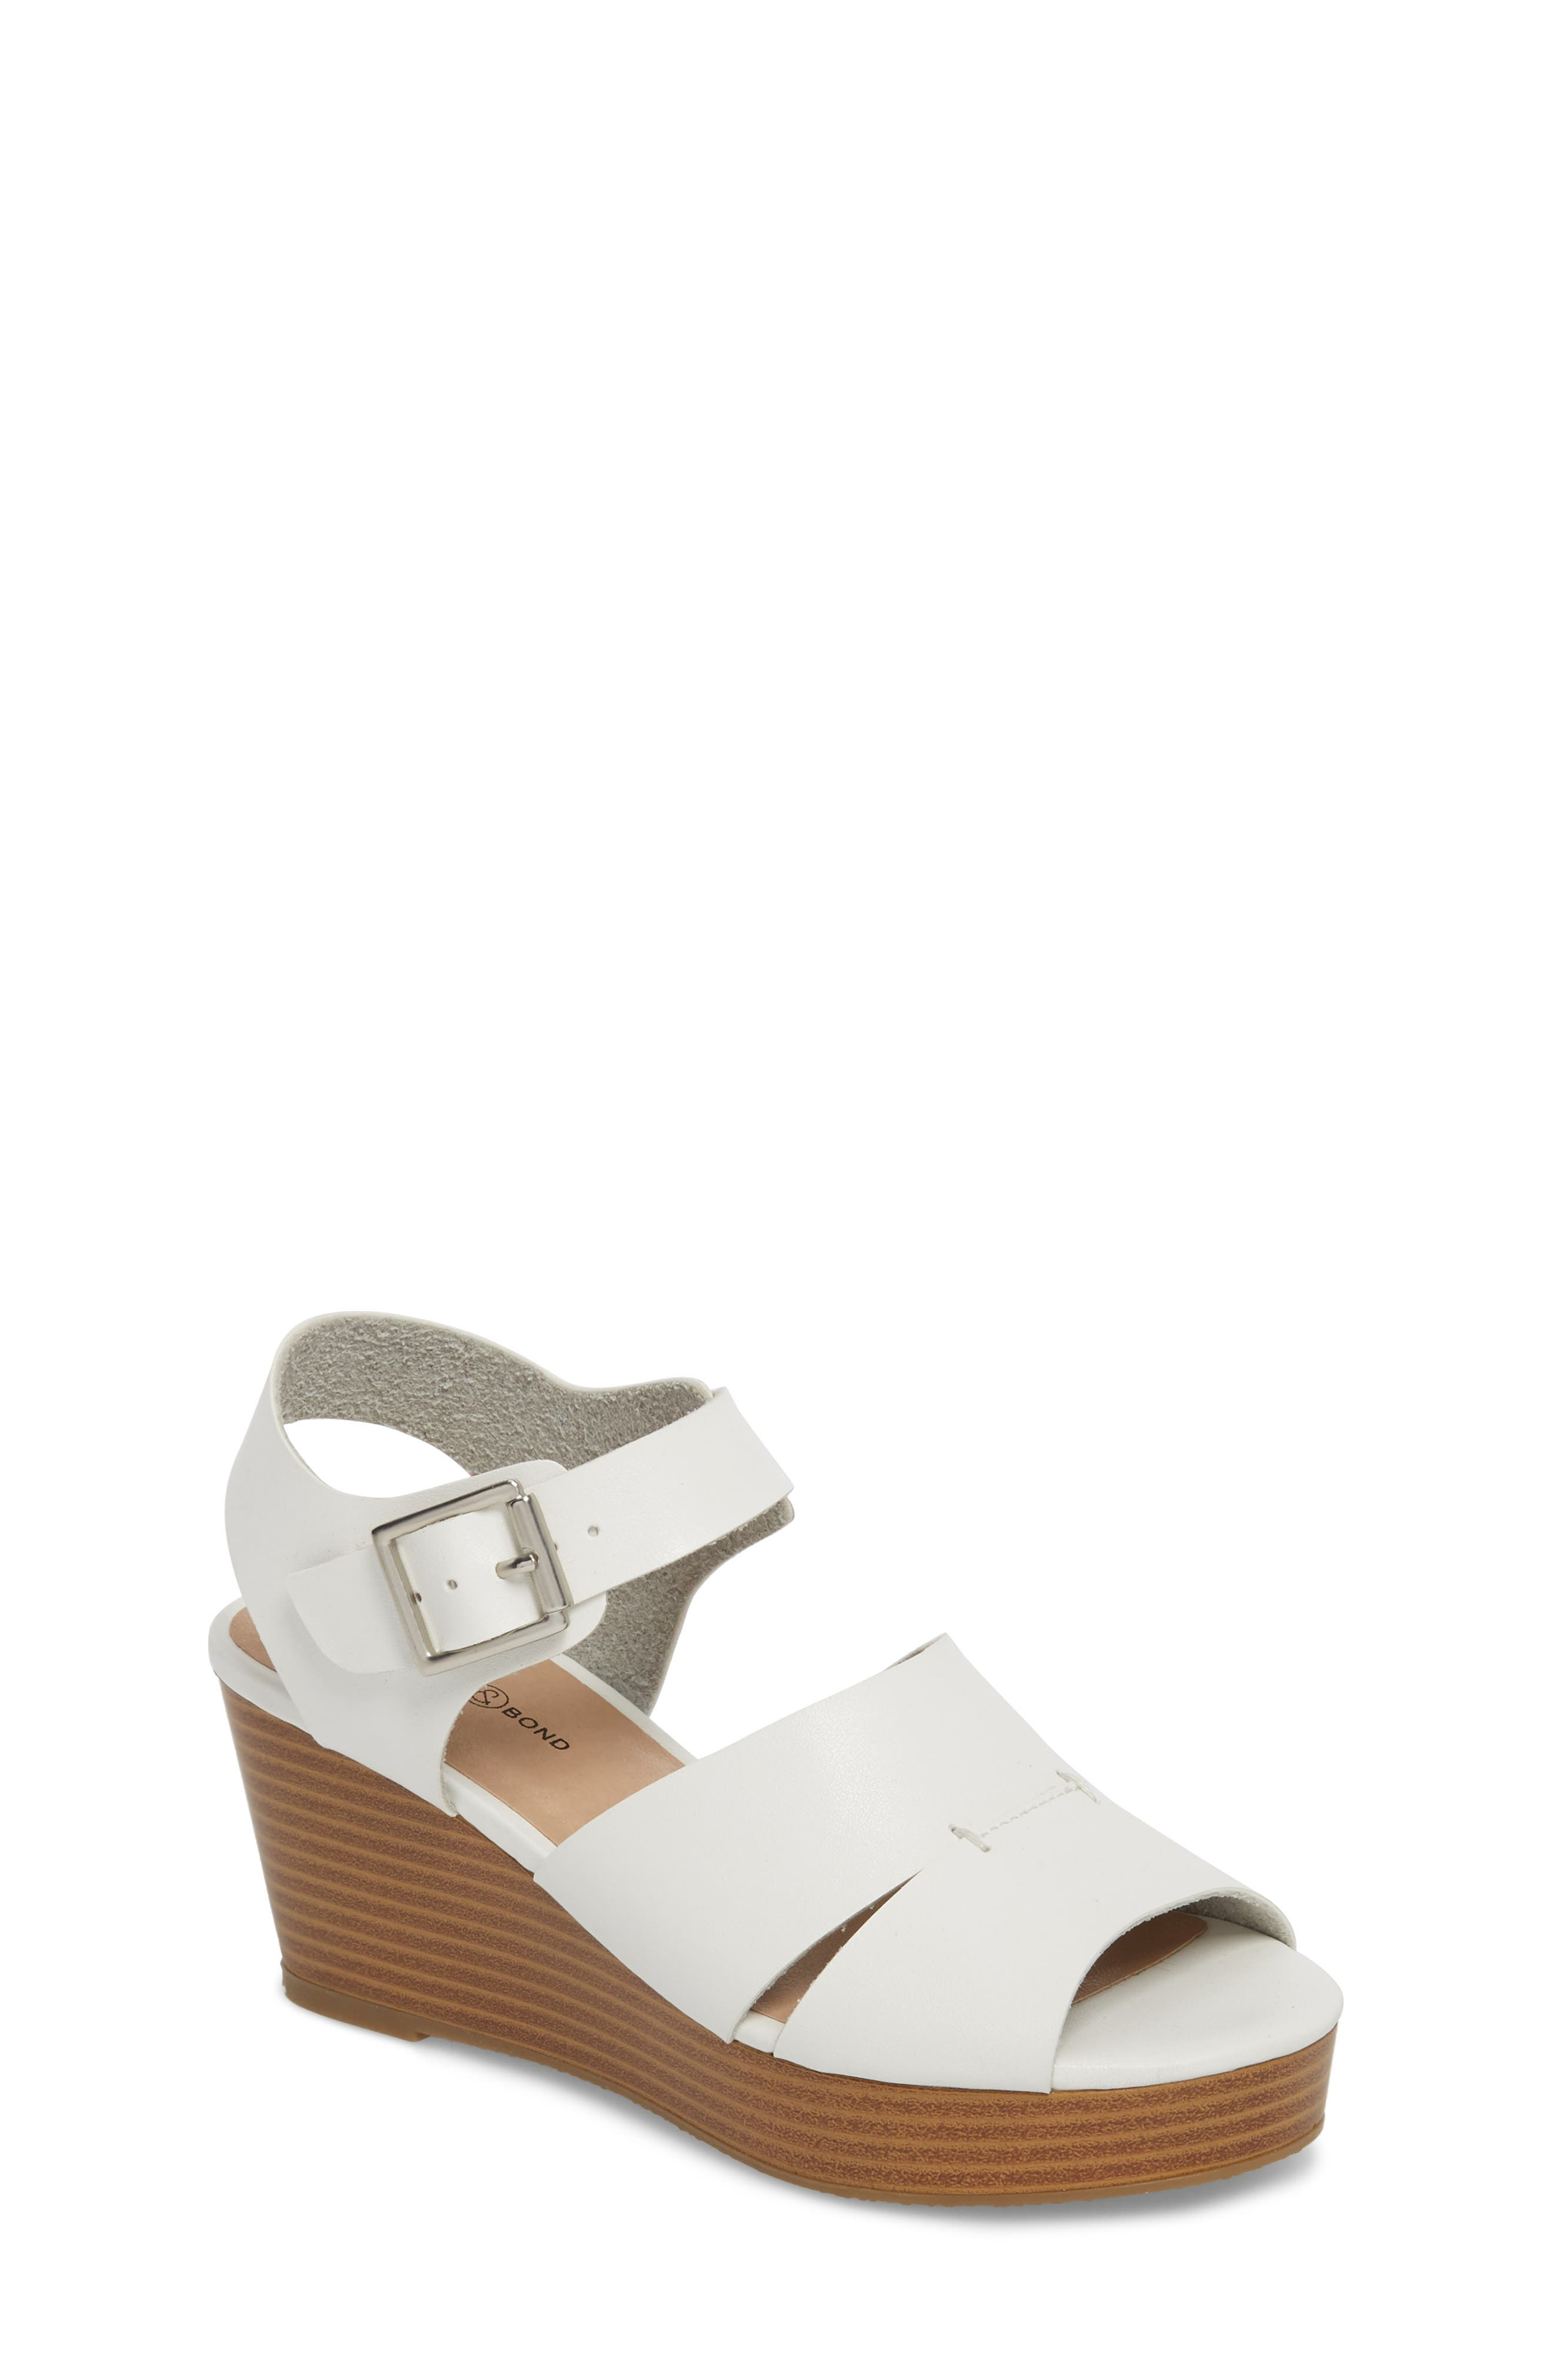 Hunter Platform Wedge Sandal,                             Main thumbnail 1, color,                             White Faux Leather